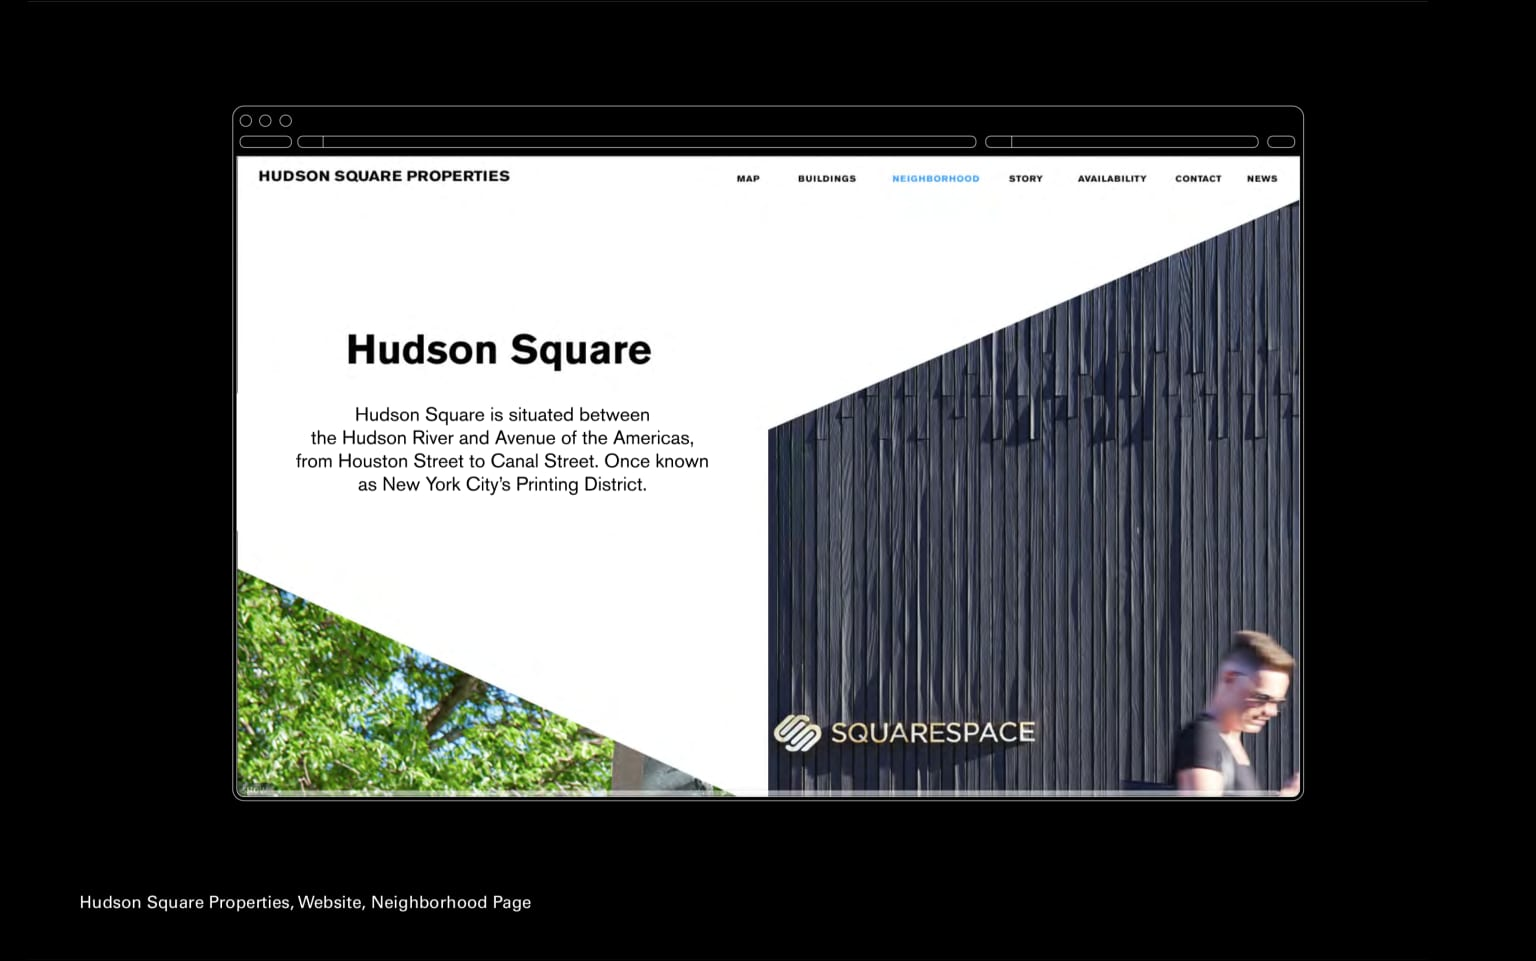 Hudson Square Properties, Website